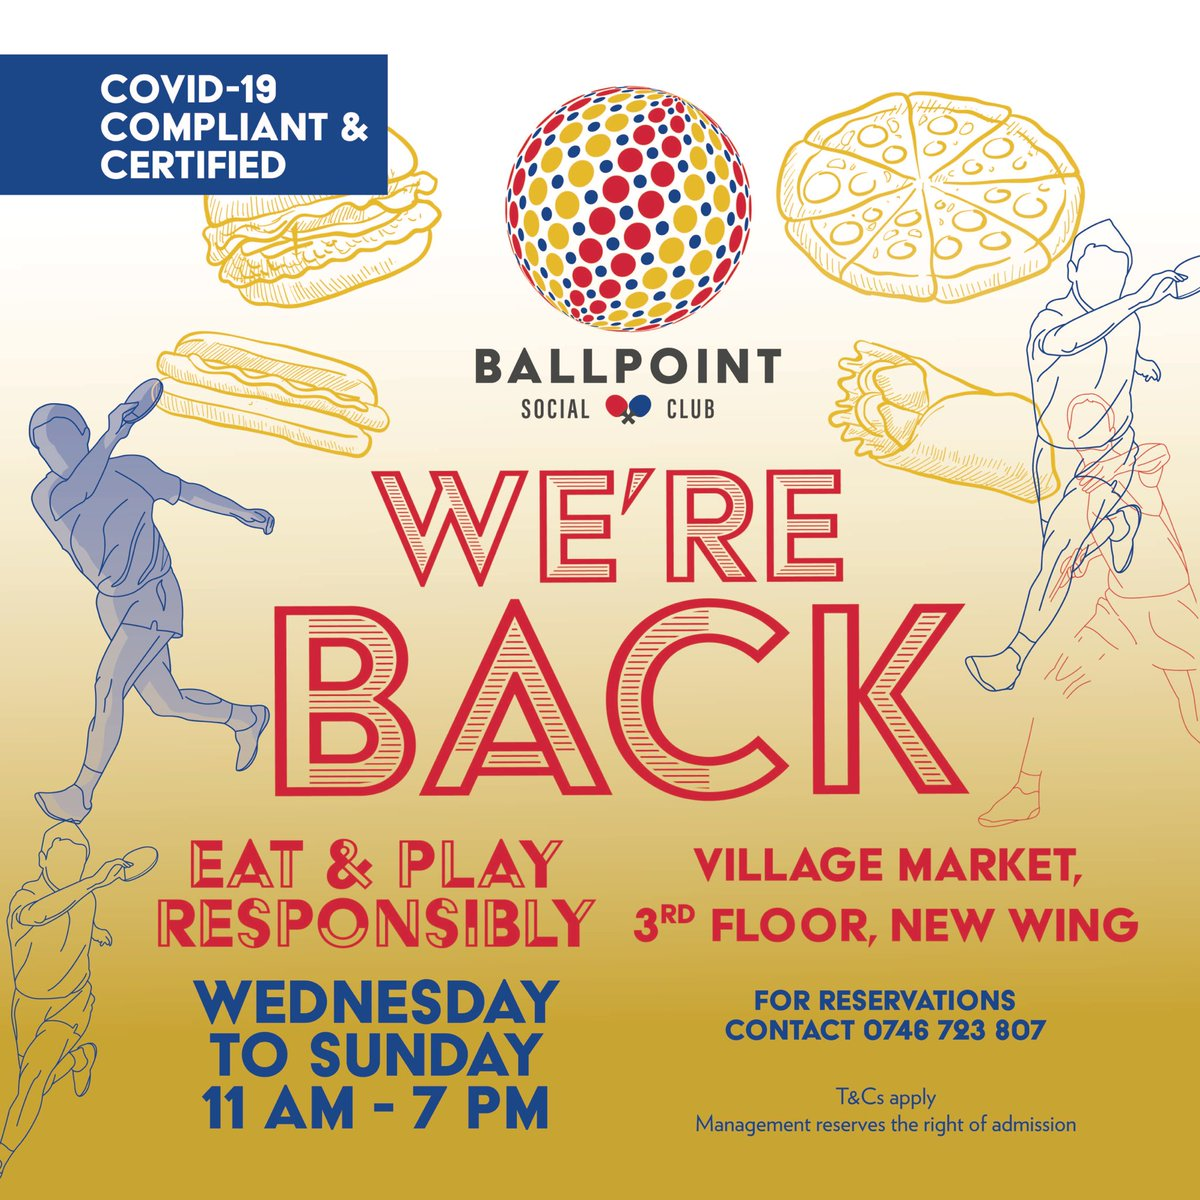 Ballpoint Social Club is back!!! 🎉🎉🥳 Come eat and play responsibly with us, Wednesday through Sunday from 11am to 7pm. COVID-19 Compliant & Certified 👌🎯🎲🏓 T's & C's apply #BallpointSocialClub #VMrecreation #Funatvm https://t.co/FwrVsfr4j4